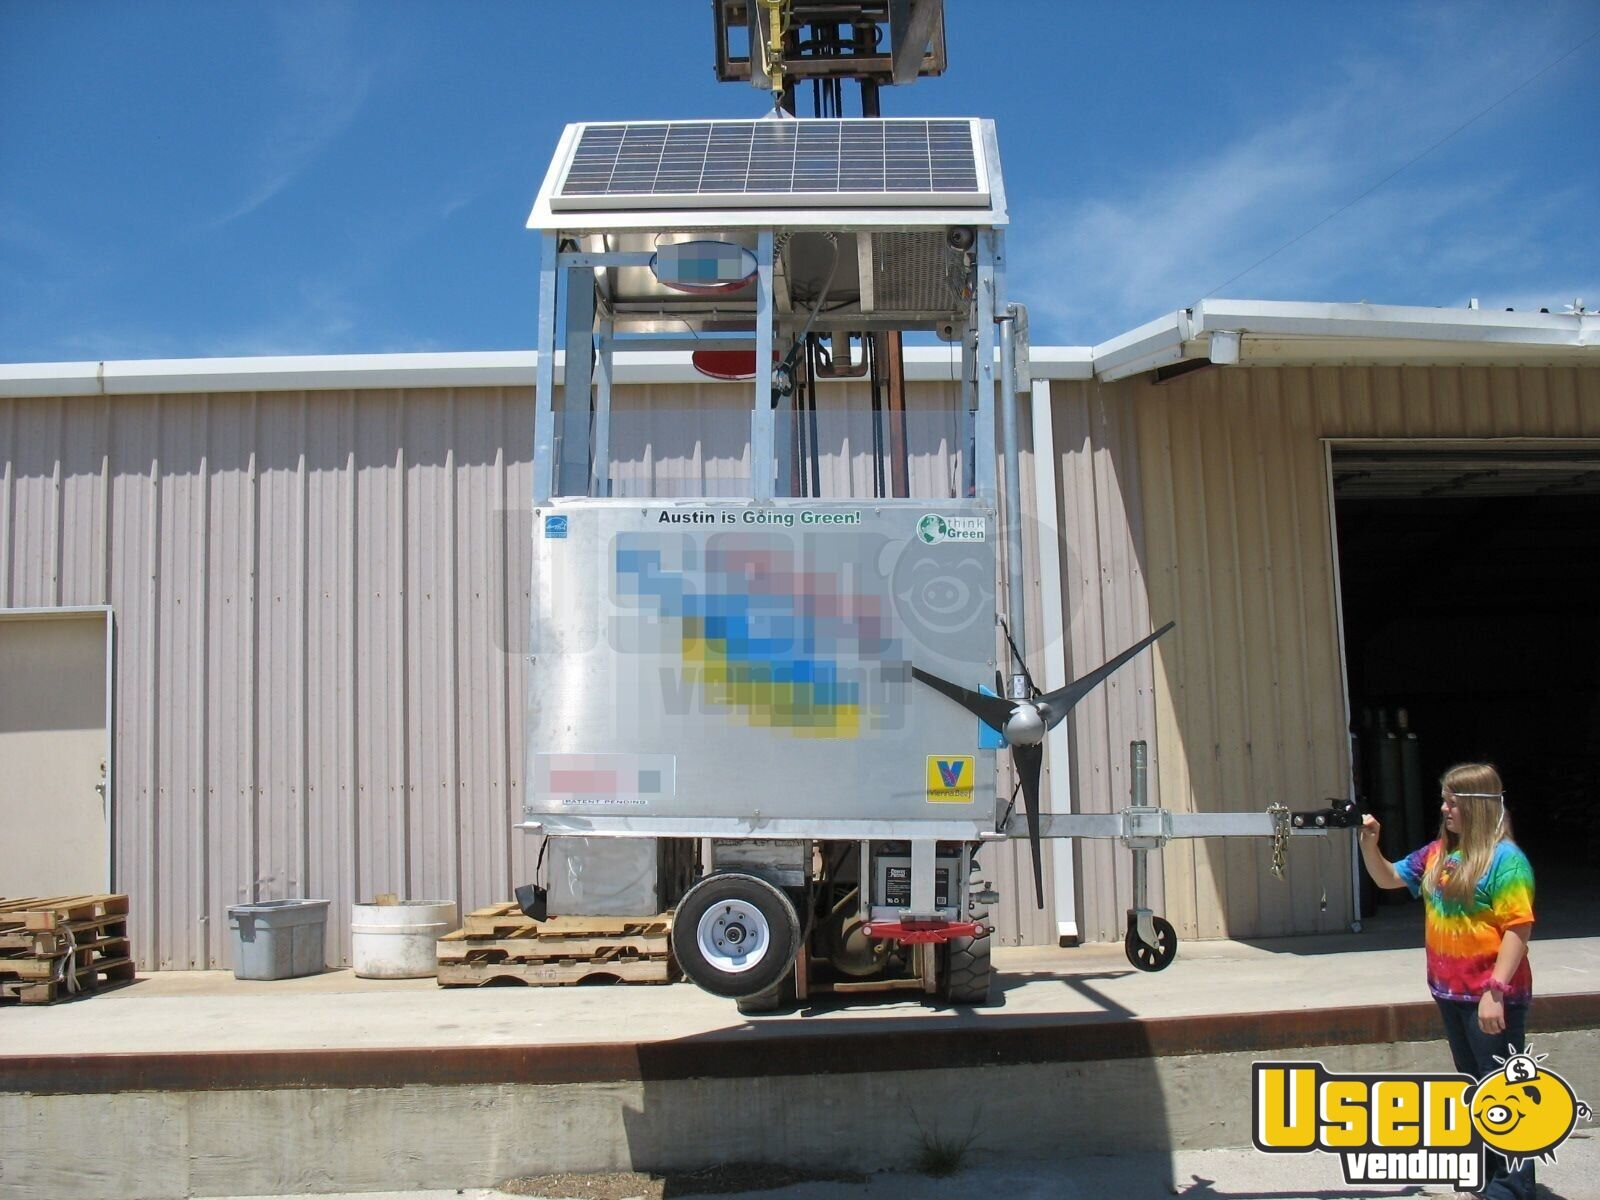 2009 Top Gun Top Dog Self Sufficient Mobile, Model Slt Cart 2 Texas for Sale - 2